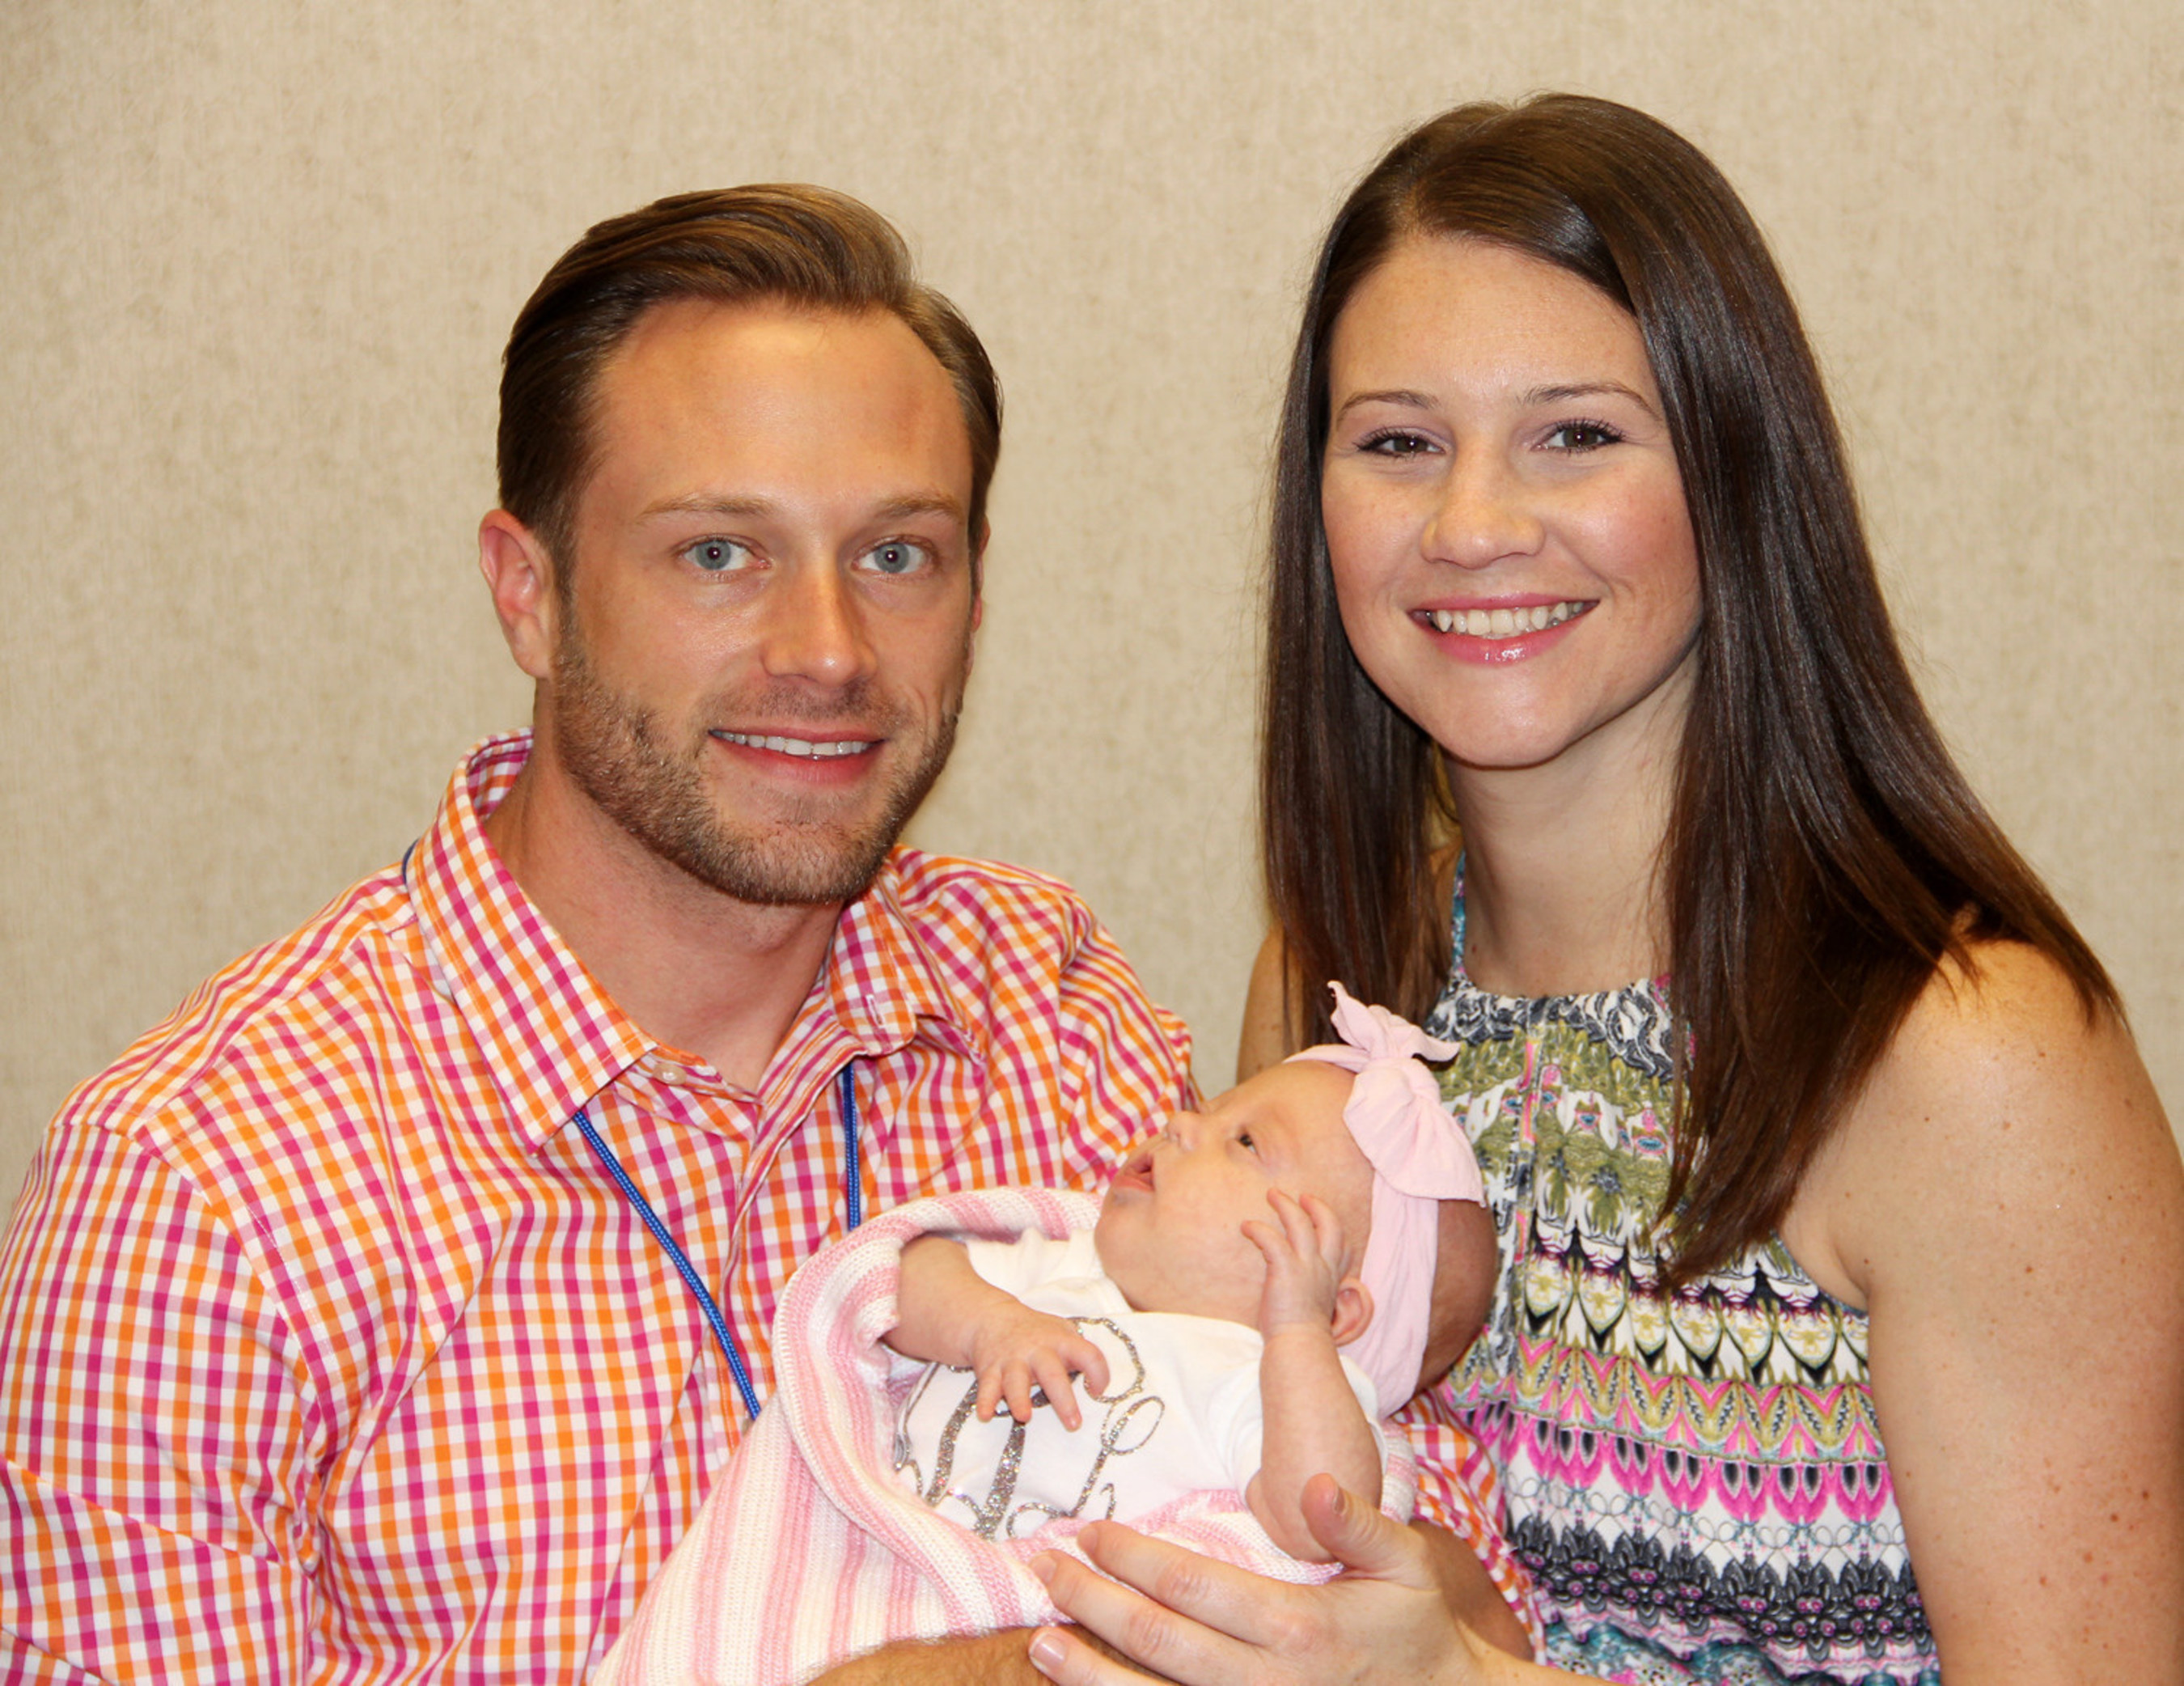 Parents Adam and Danielle Busby take Ava Lane home today.